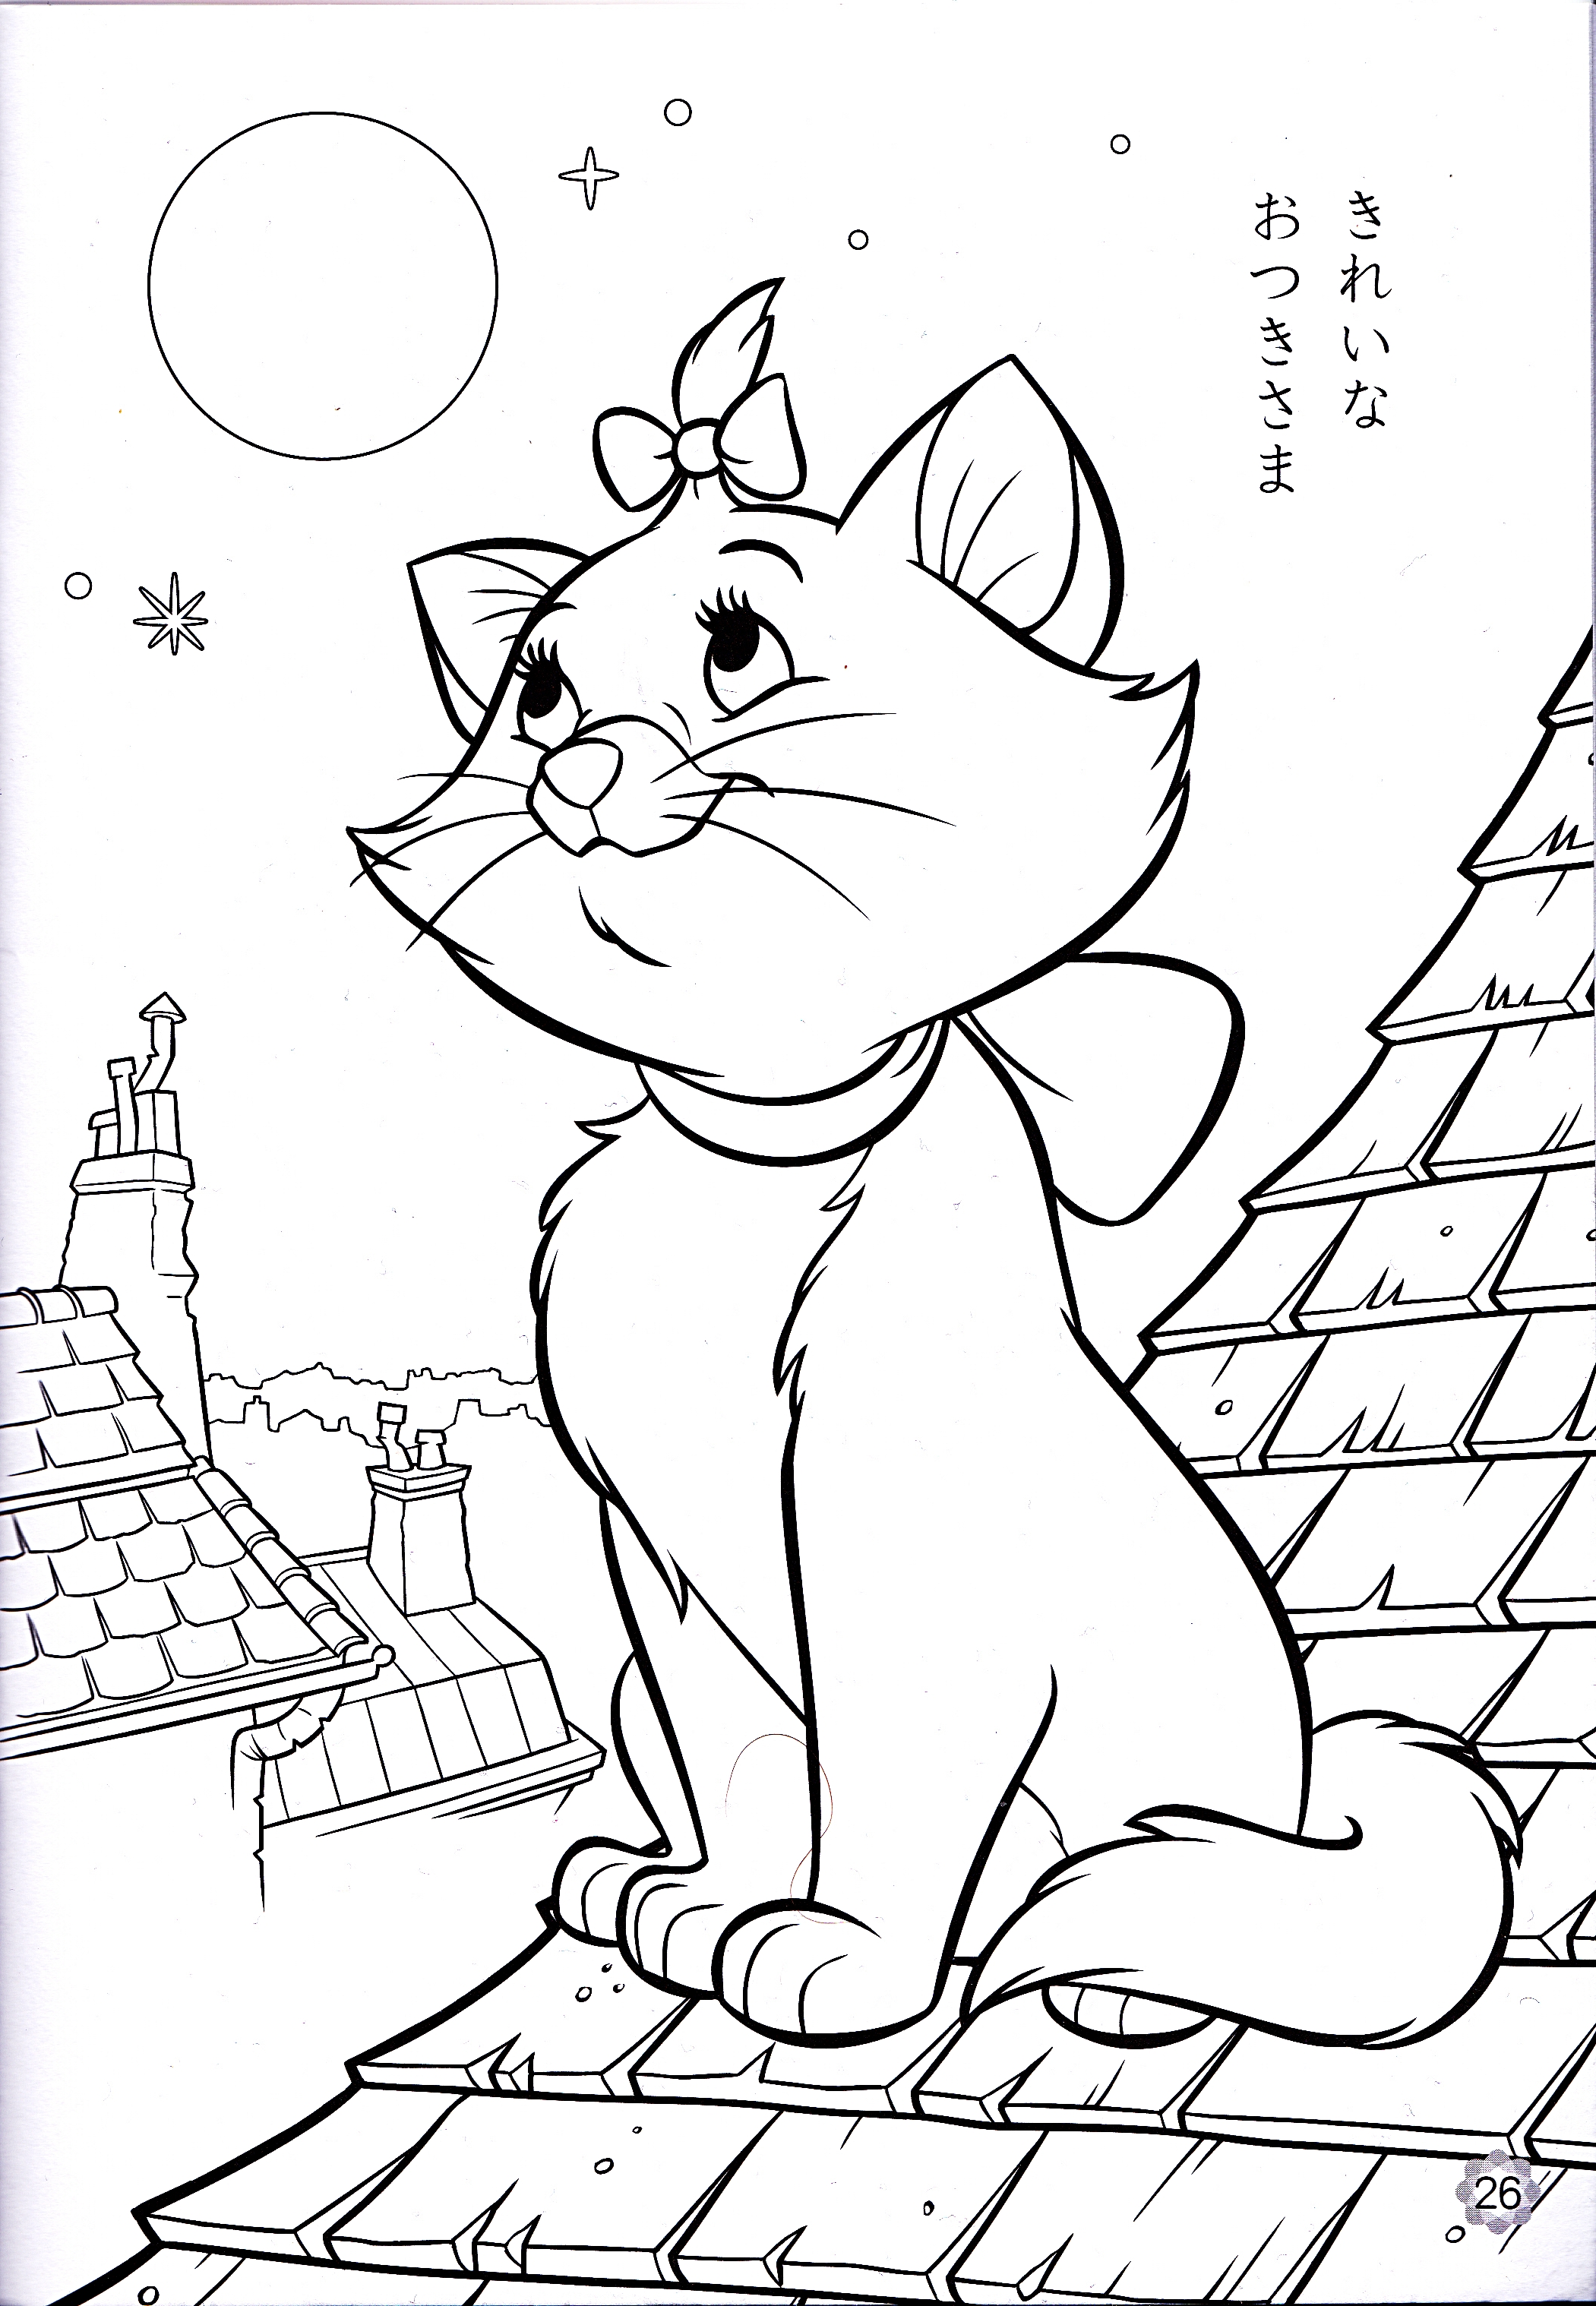 Baby disney coloring pages to download and print for free.